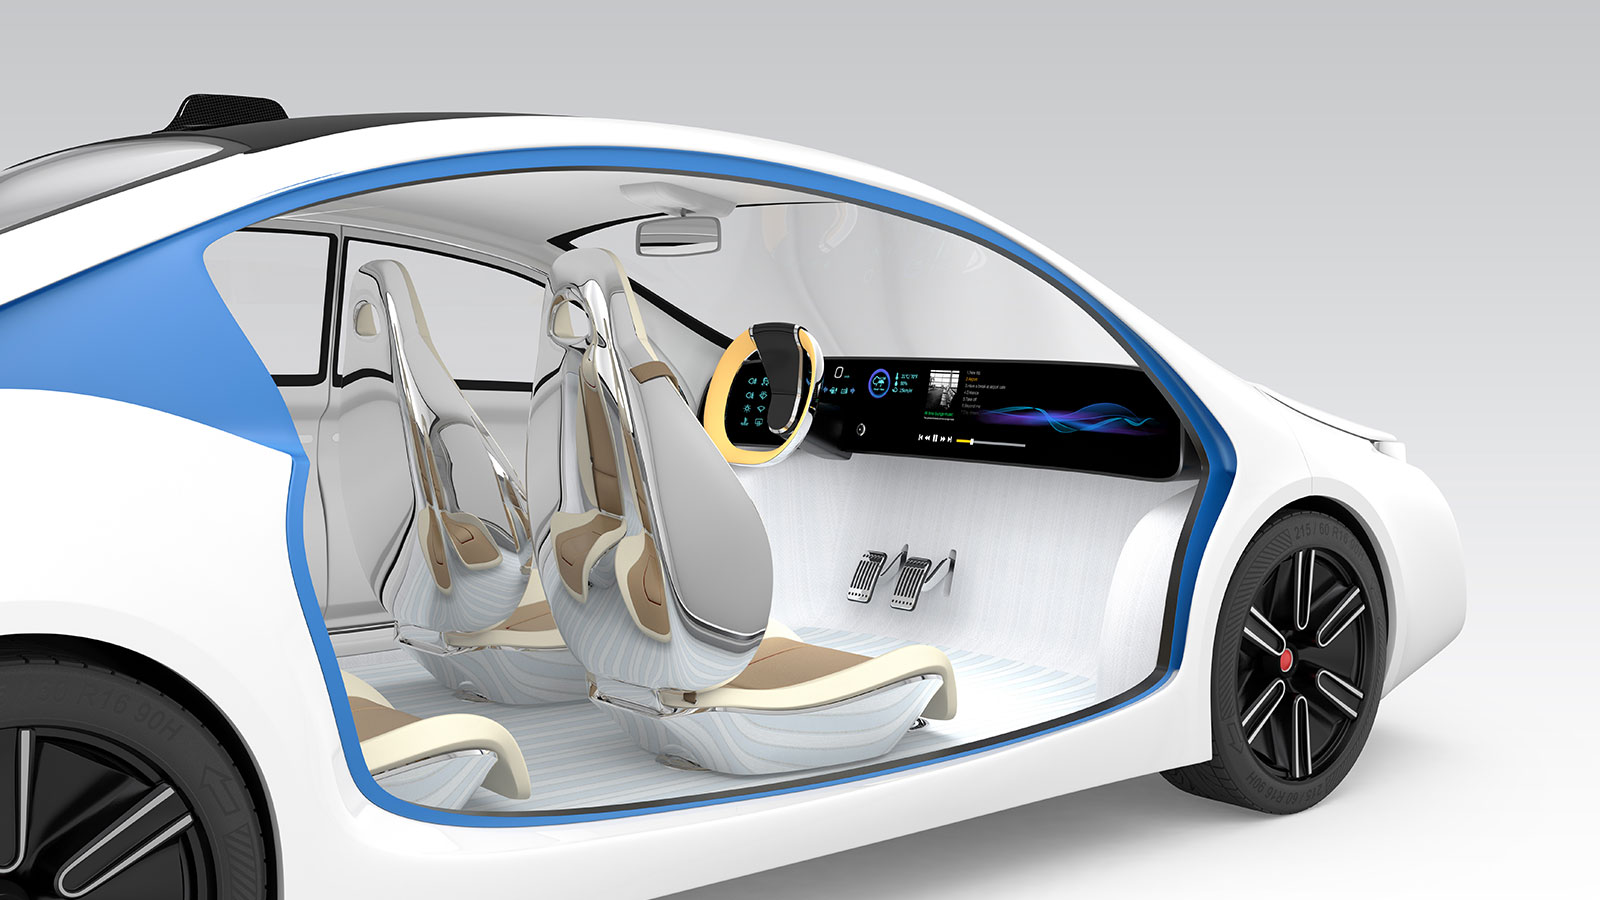 interior of a white futuristic car